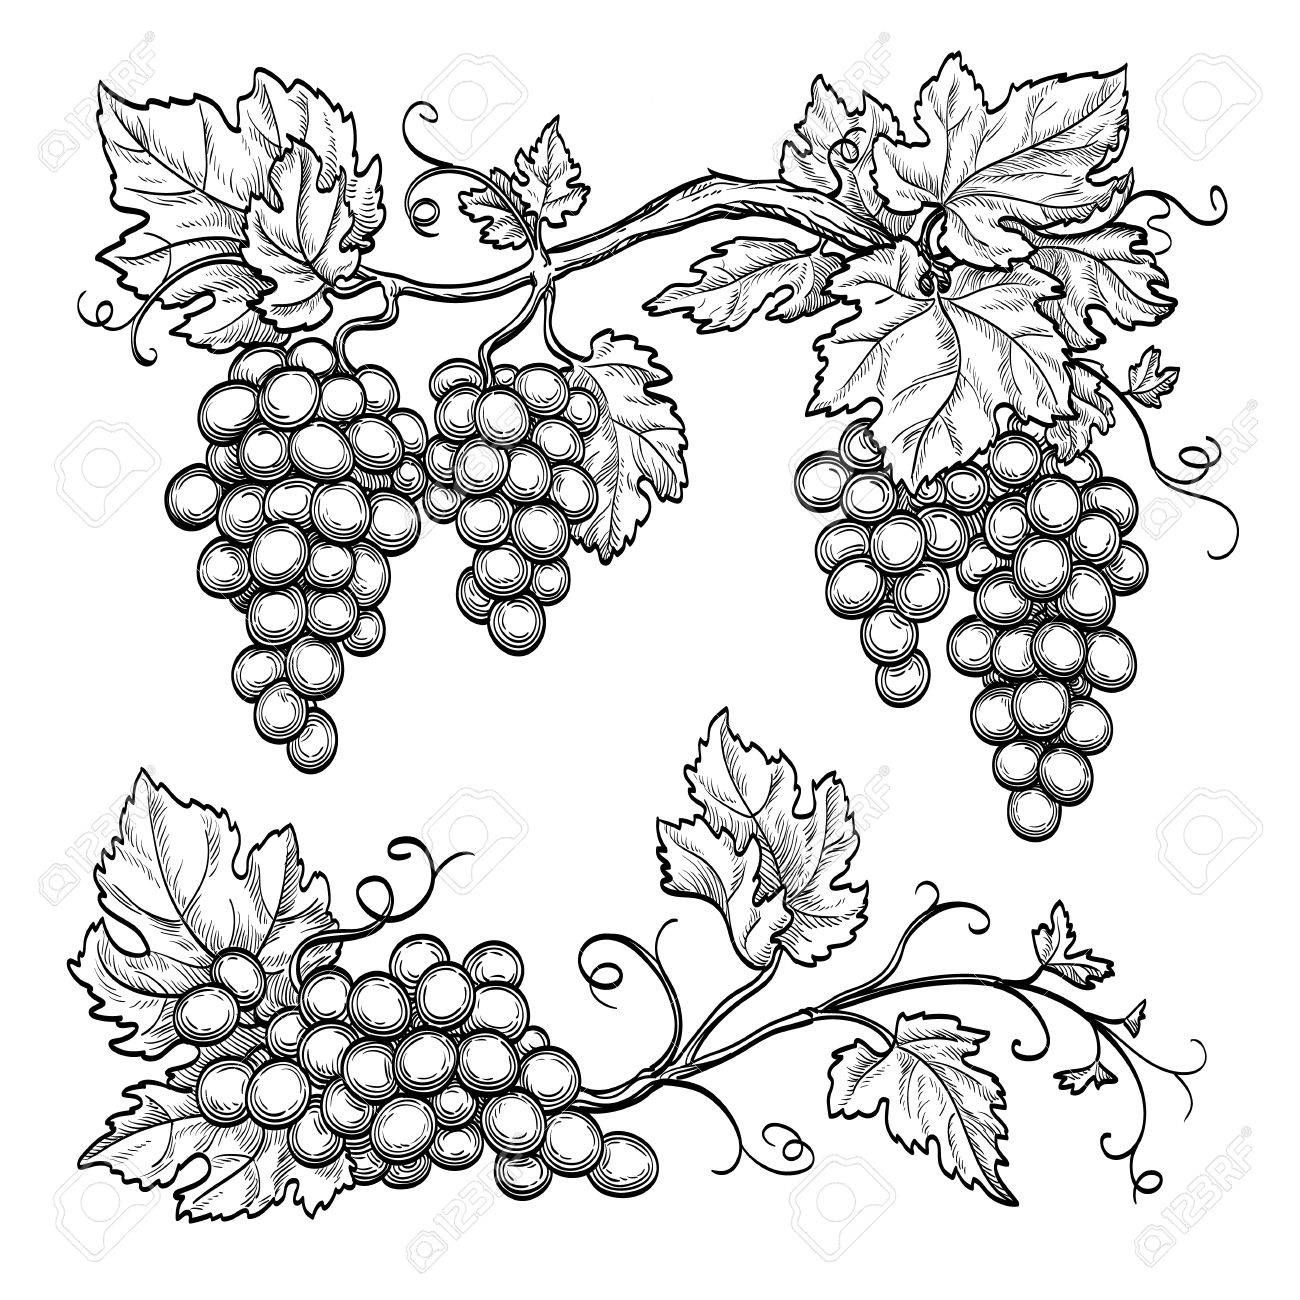 Image Result For Grape Leaves Drawing Vine Drawing Grape Drawing Leaf Drawing